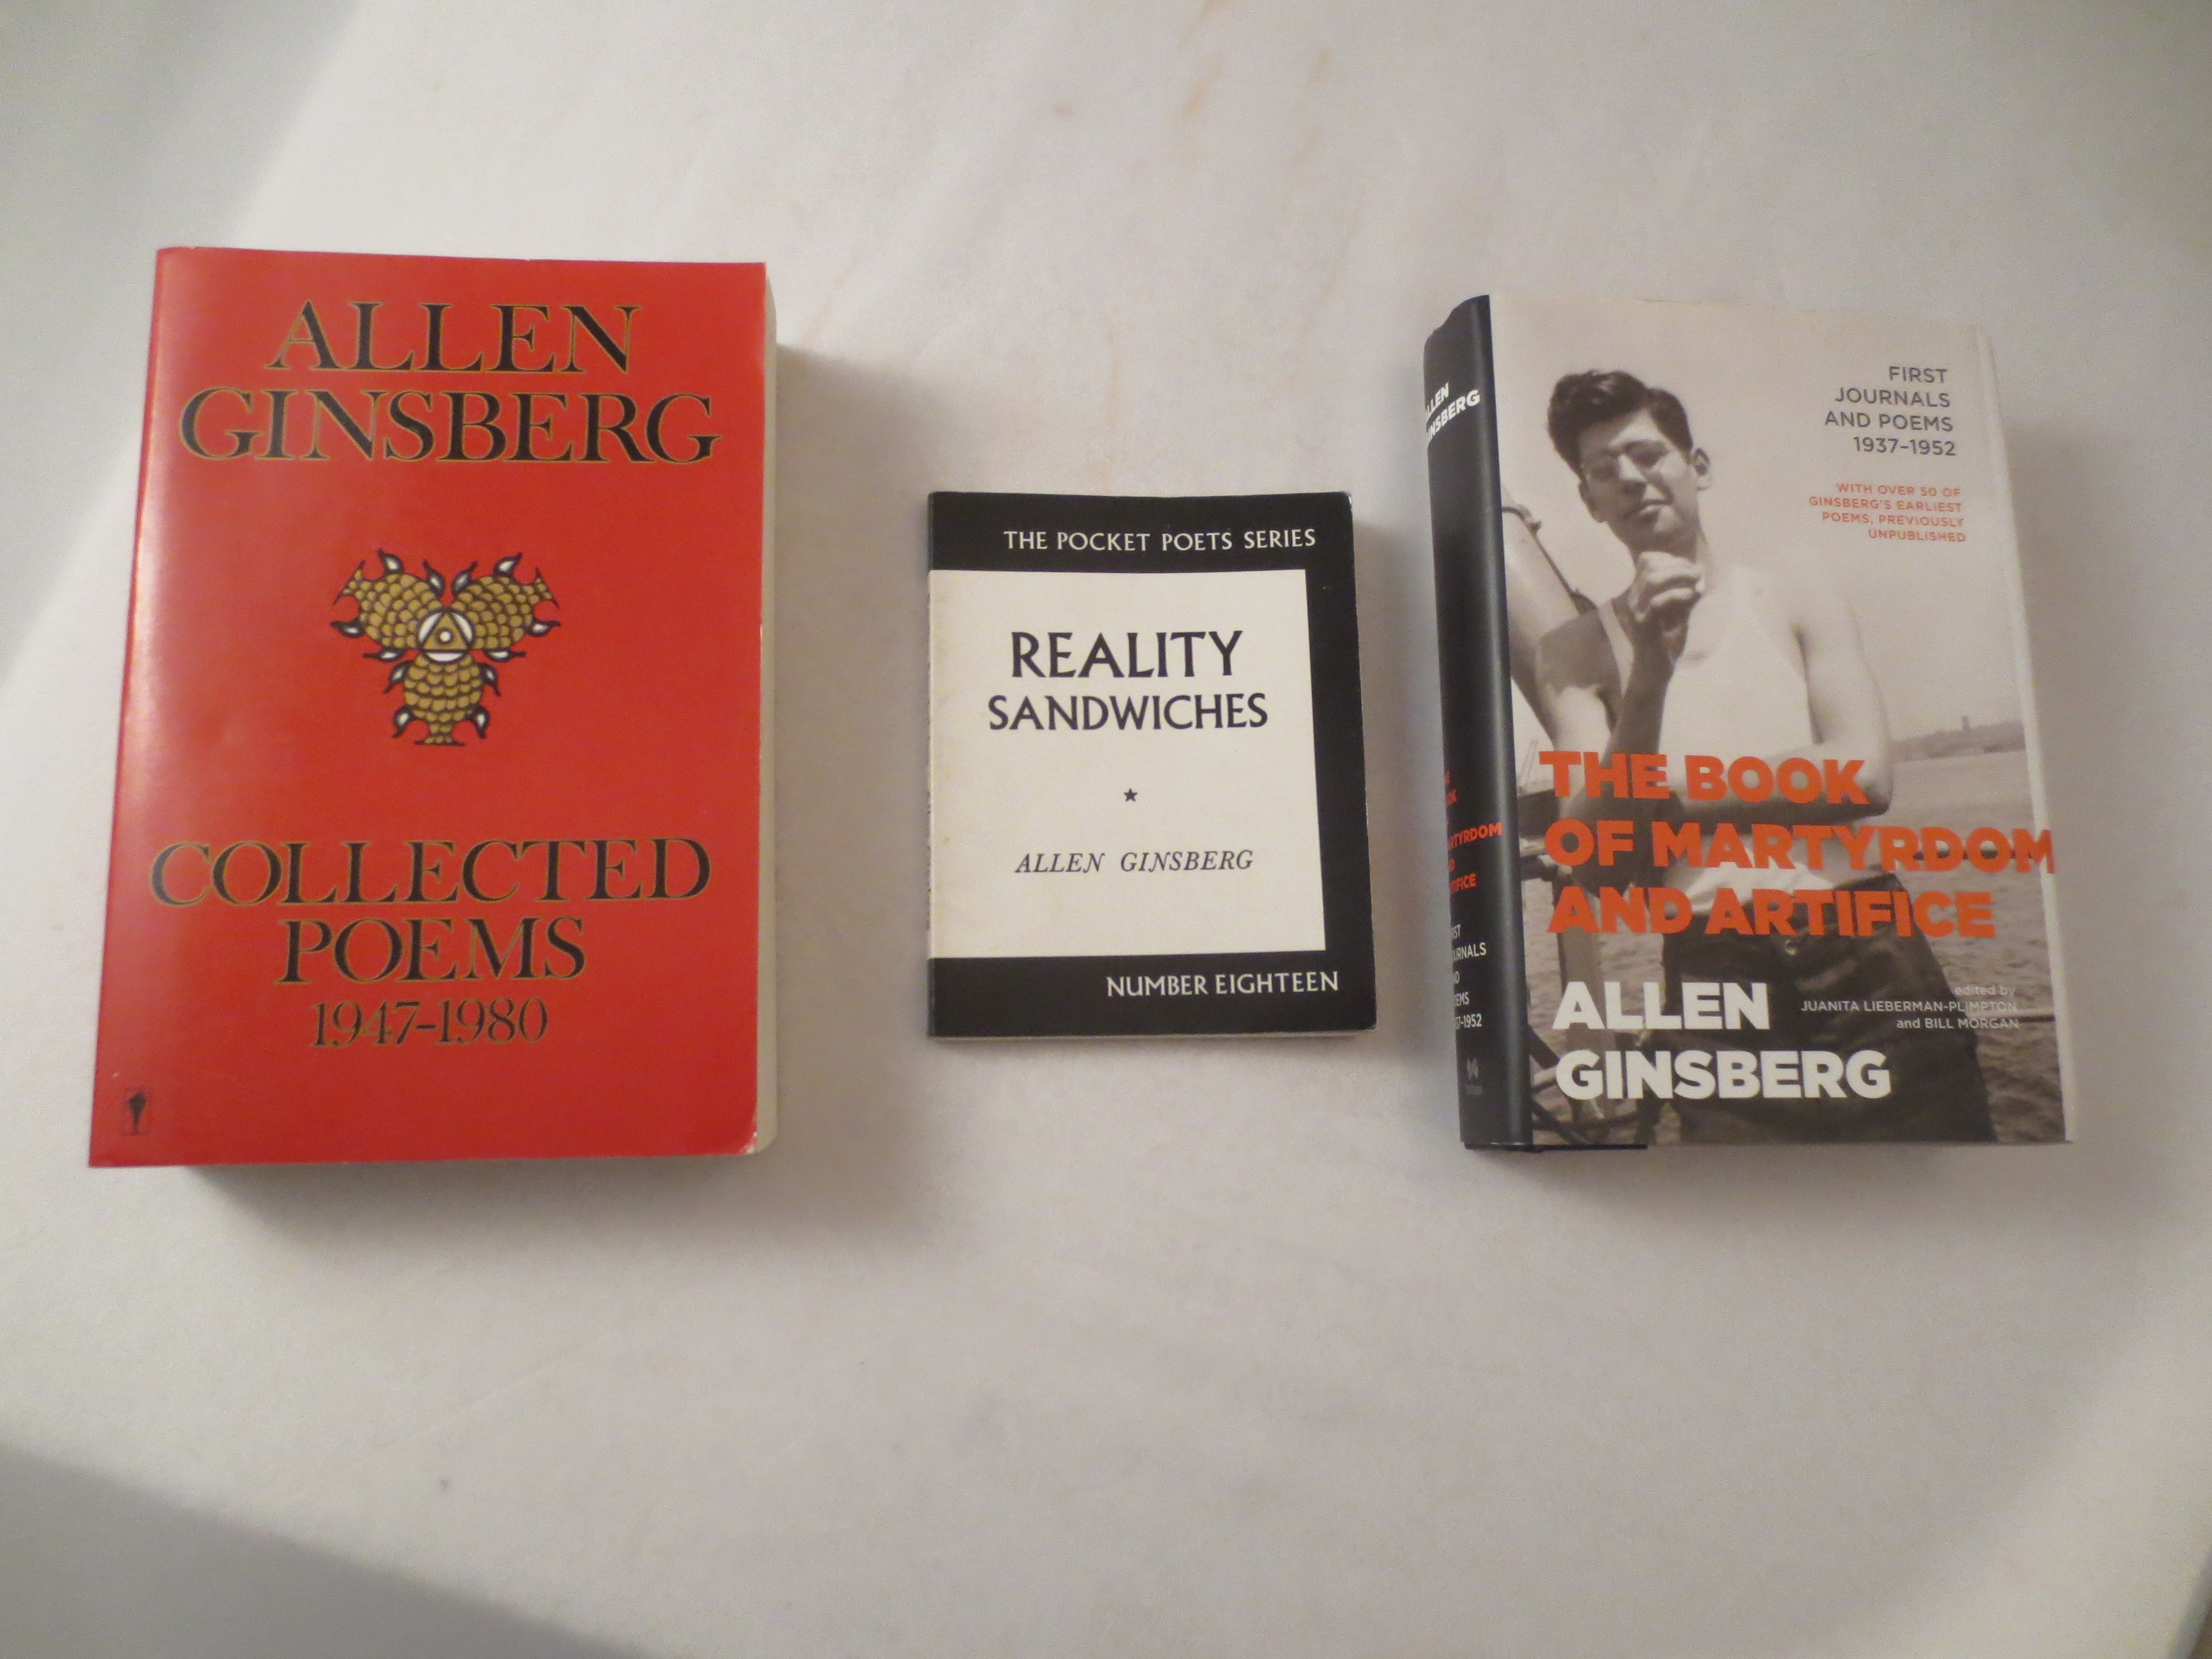 3 Allen Ginsberg Books Including The Book of Martyrdom and Sacrifice and Reality